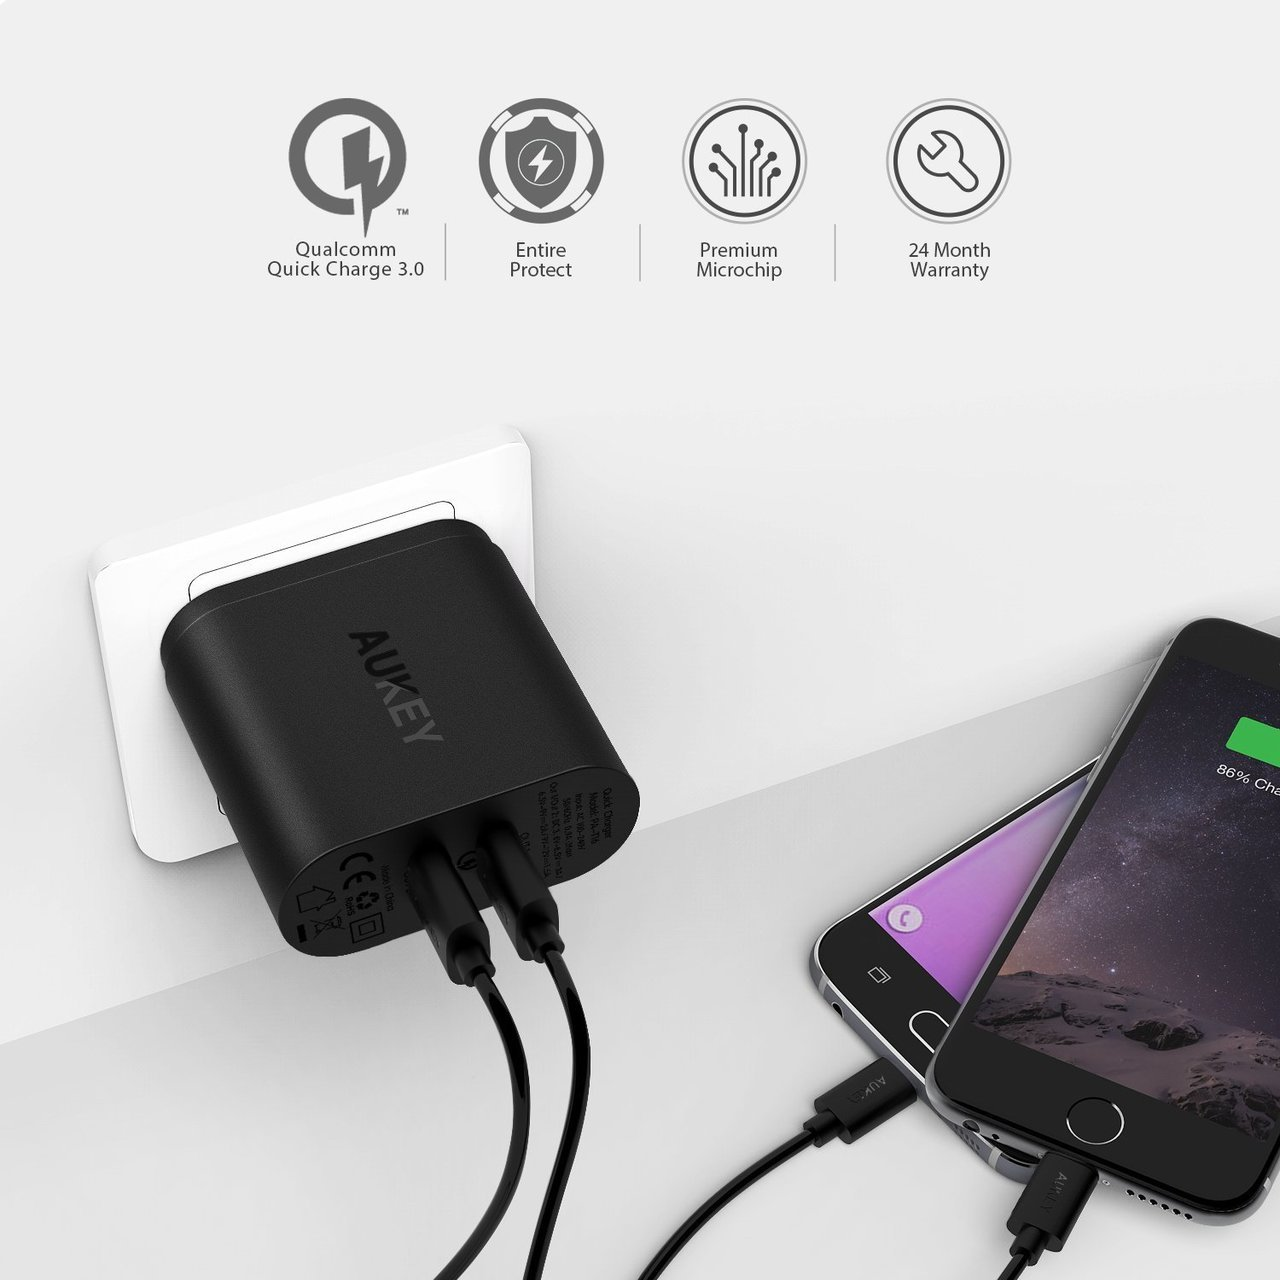 AUKEY 2-Port 36W Wall Charger with QC 3.0 - Black - PA-T16